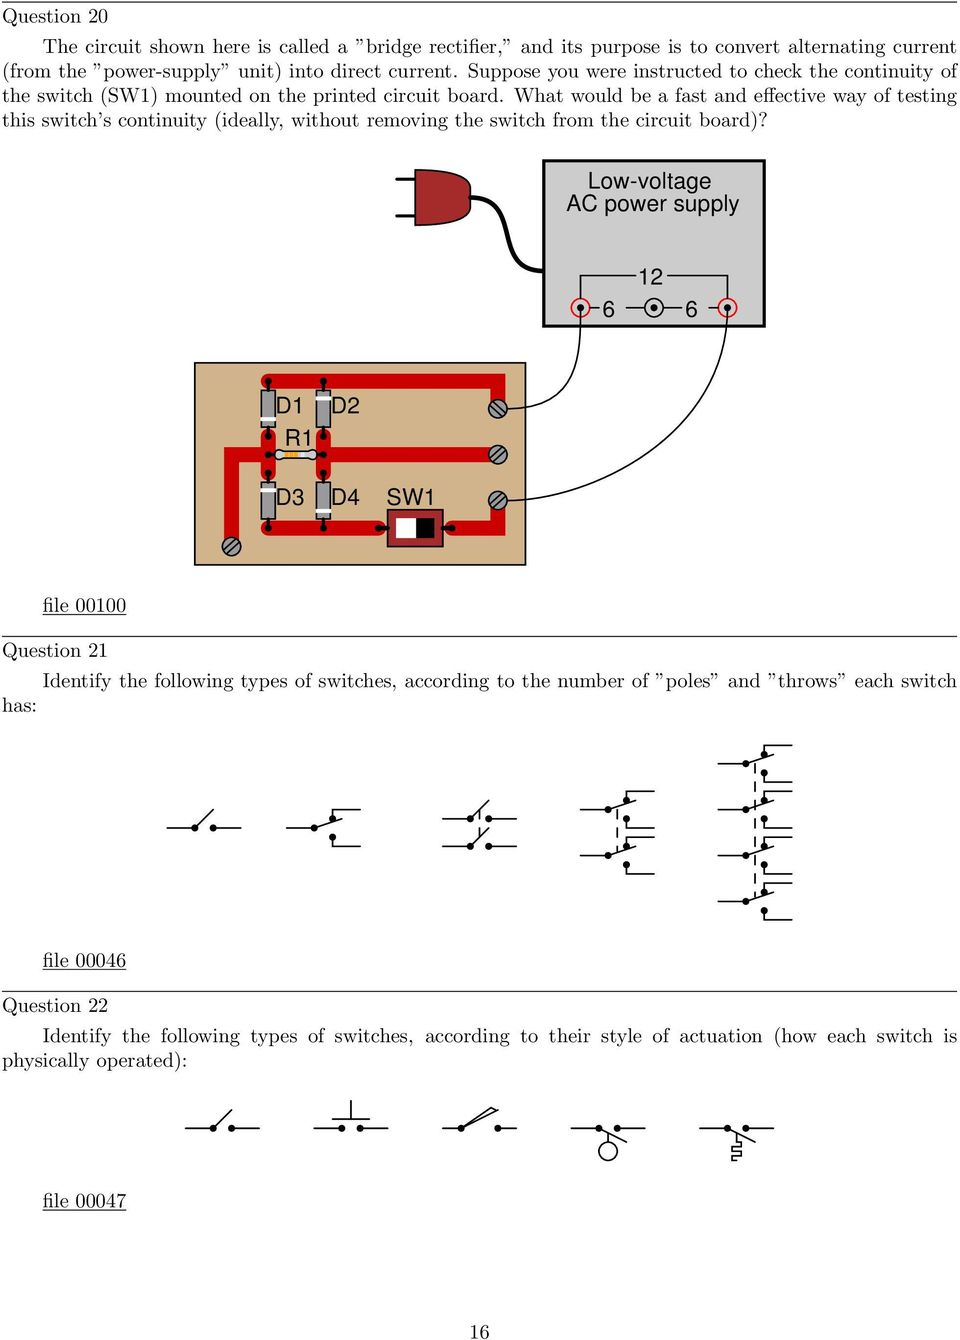 Simple Circuits Worksheet Pdf Circuit And Switching Theory Here S The Schematic That We Ve What Would Be A Fast Effective Way Of Testing This Switch Continuity Ideally